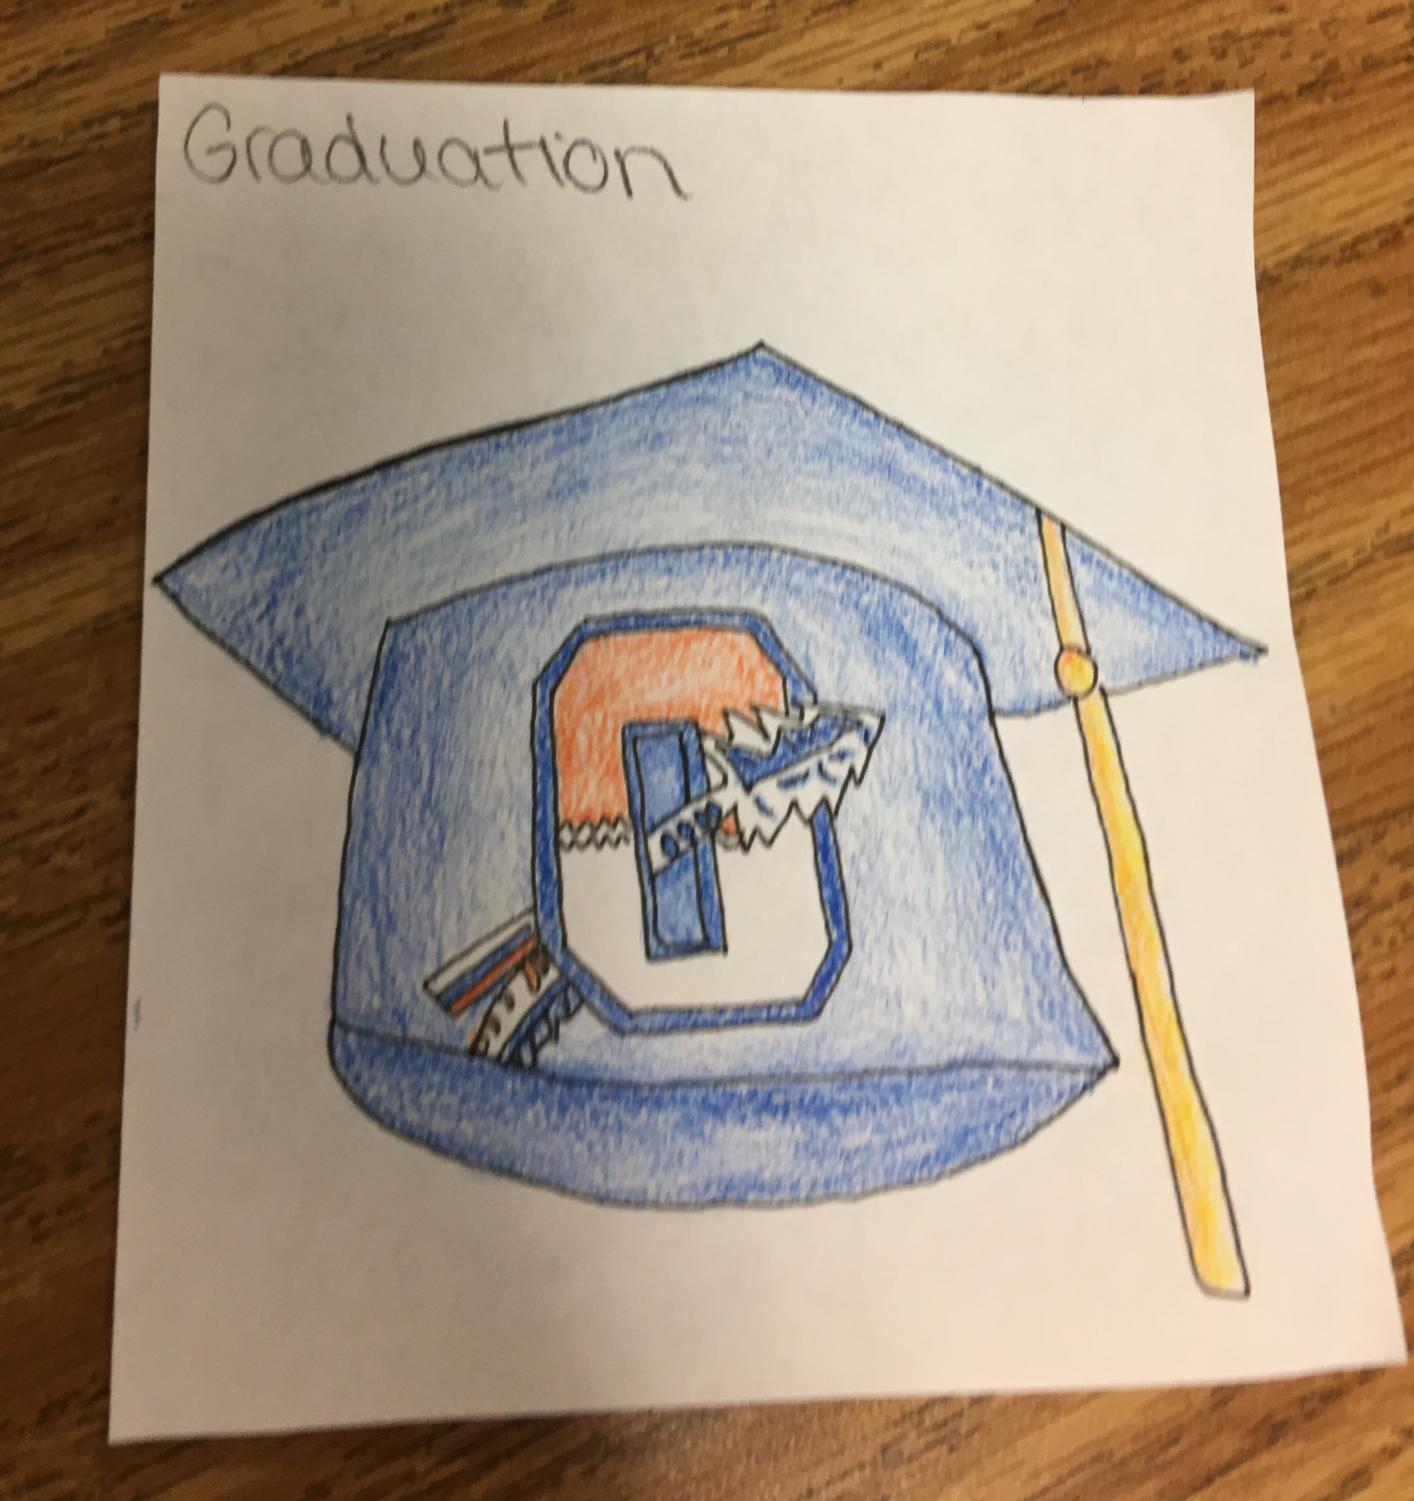 Art By Cassie Sandberg. The graduation this year was moved from June 2nd to May 21st.